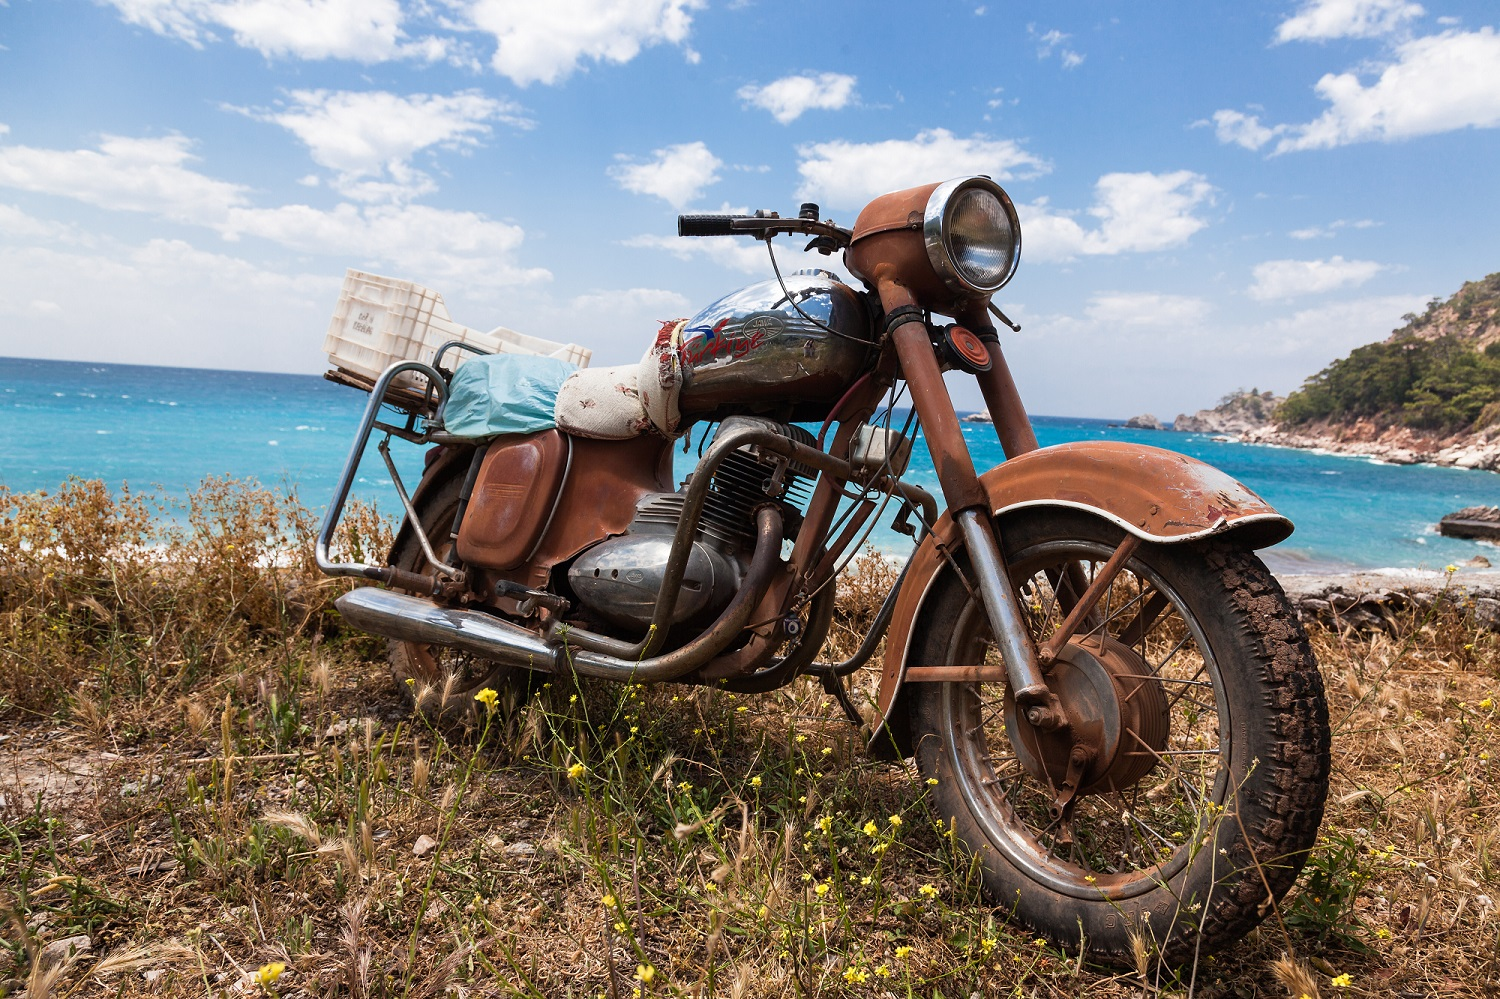 Rusty chrome motorcycle with sea in the background